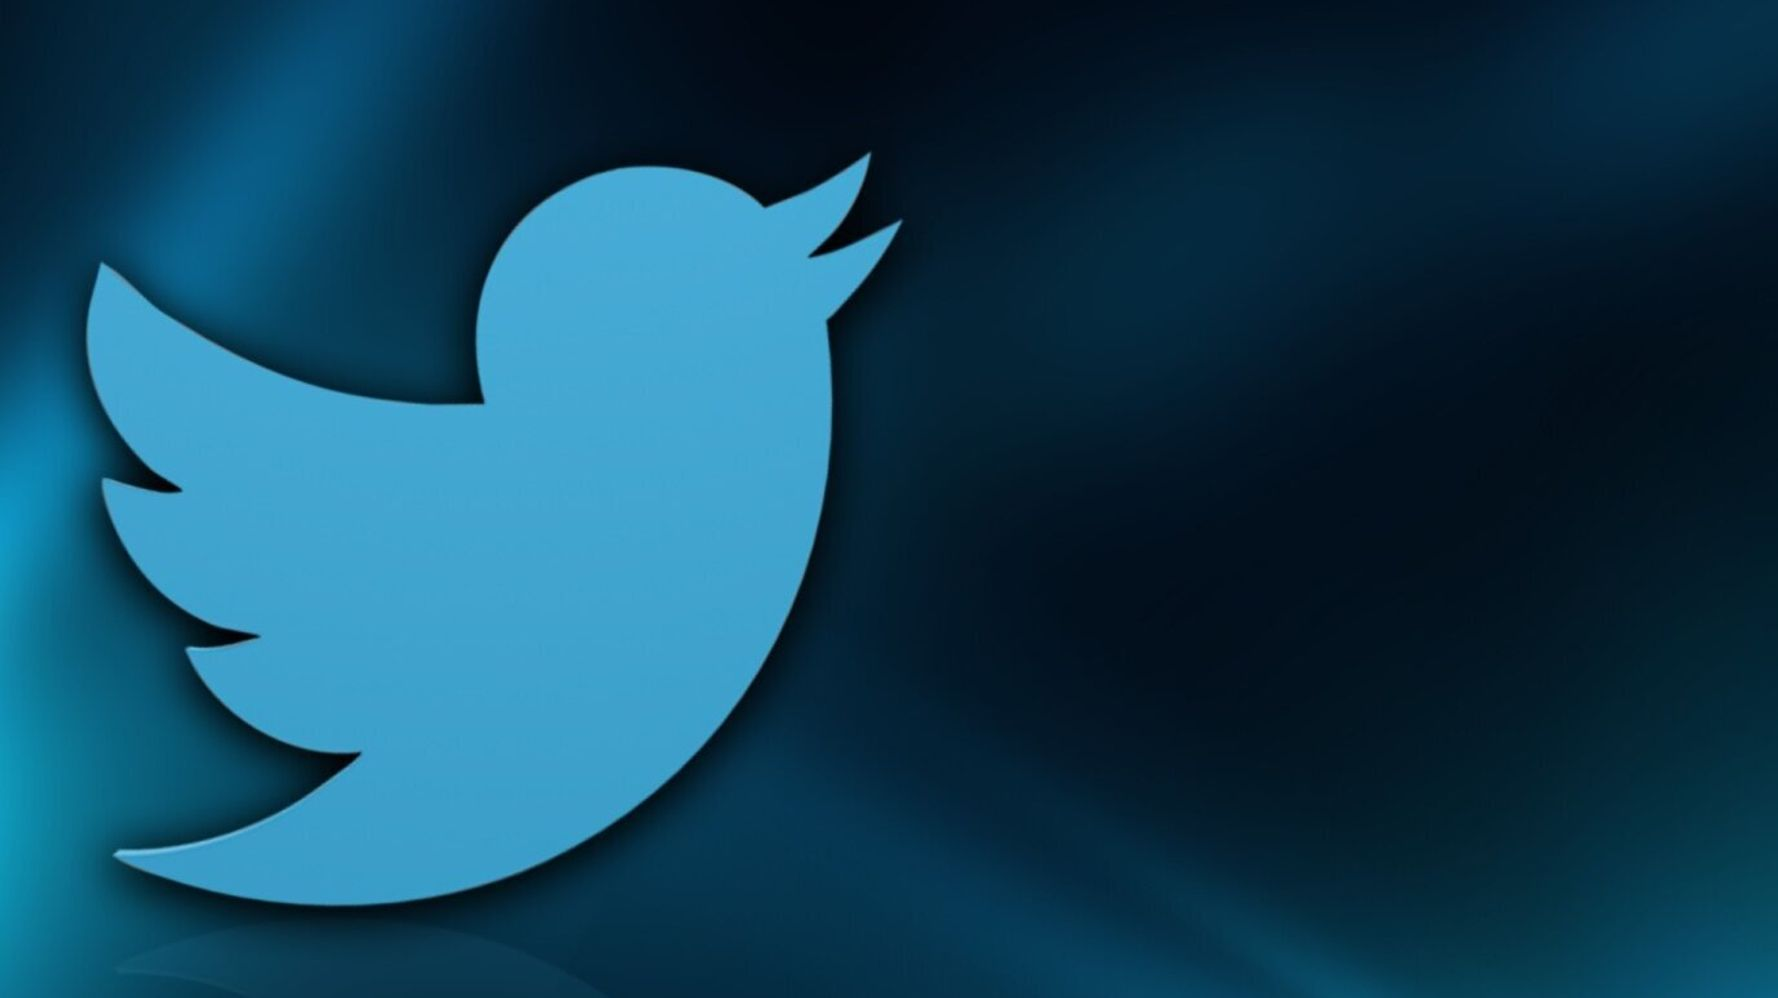 Twitter Halts Plans To Purge Inactive Accounts Over Concerns For The Dead